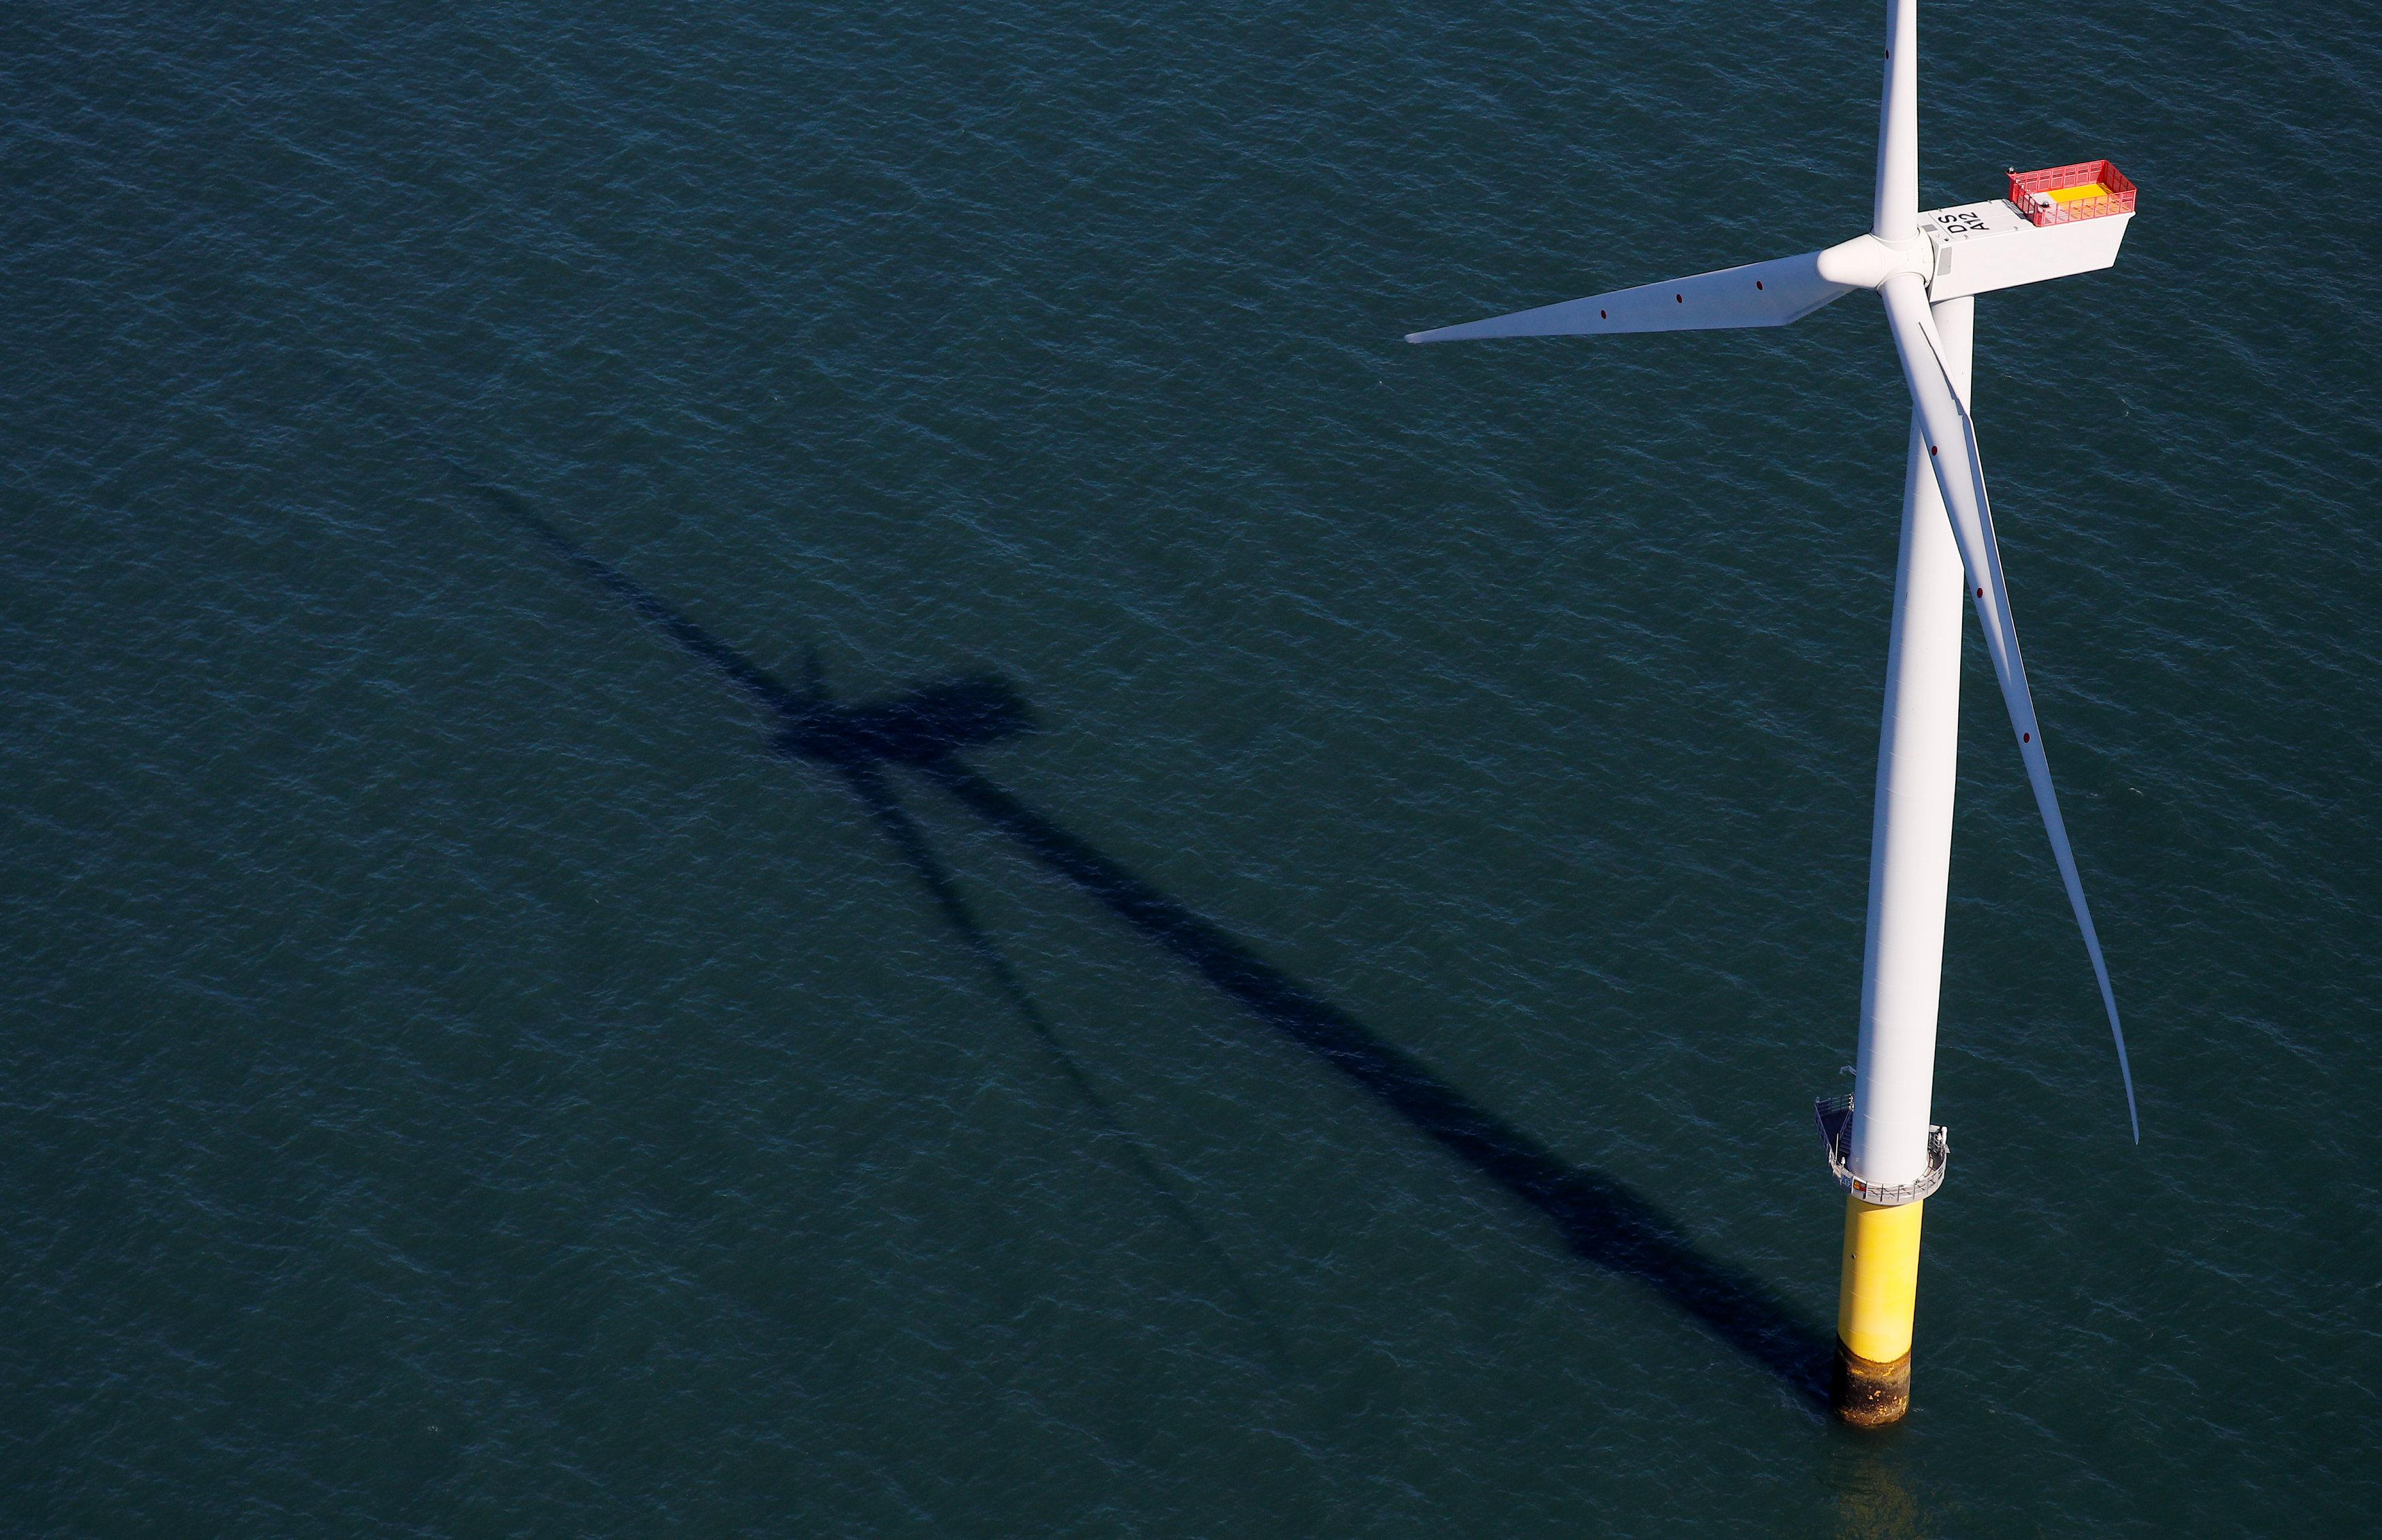 World's largest offshore wind farm opens off northwest England - Reuters